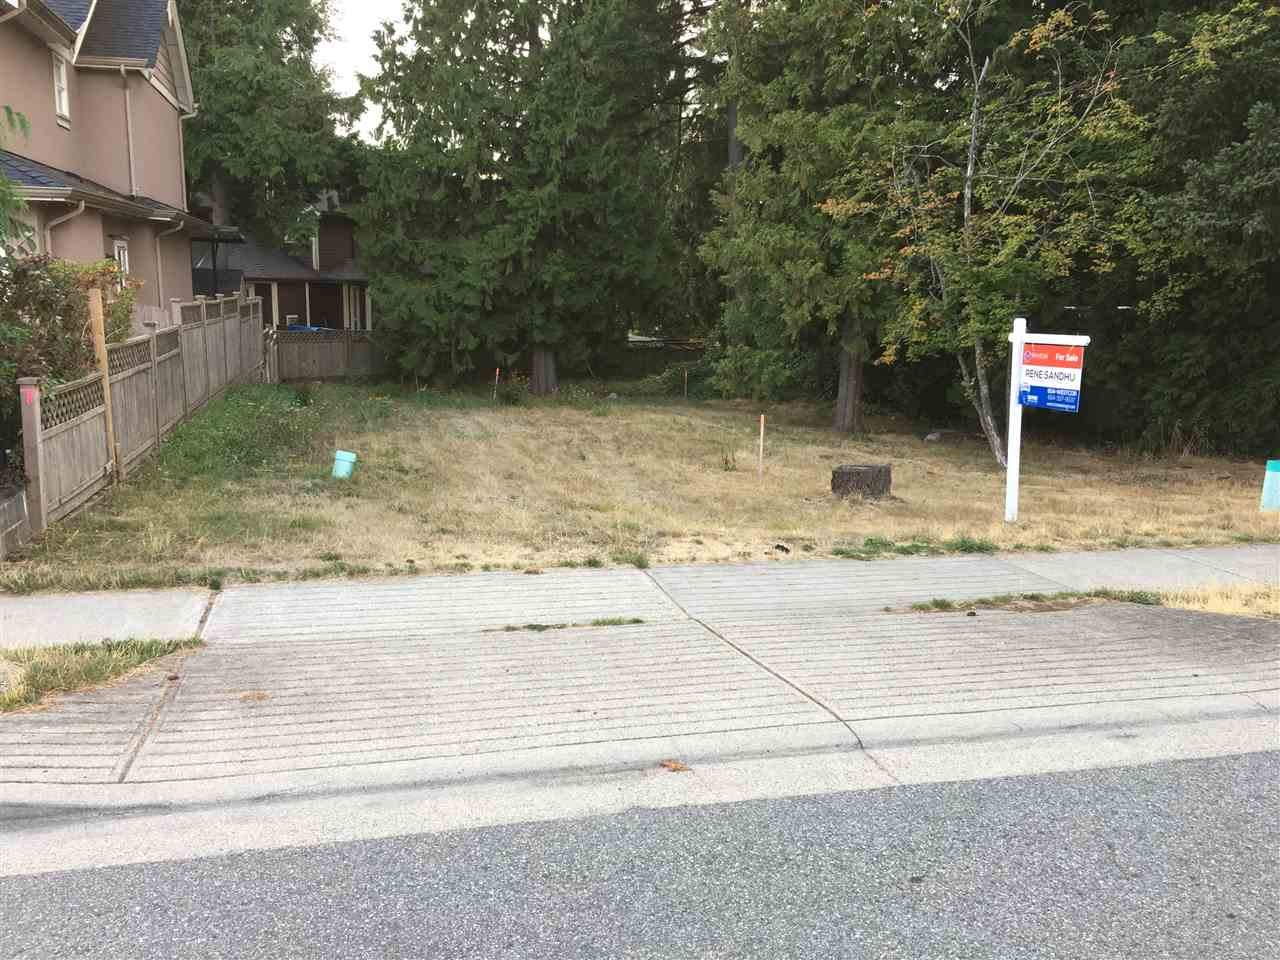 Build Your Dream Home Here, or Let Us Build It For You!! This building lot is ready to go and is a quick walk to some of the best Elementary and High Schools in North Delta (Devon Gardens Elementary and Delview Secondary). Plans are made for a beautifully thought out, 3-Level home. This lot is also located close to Highways, Bridges and Shopping areas. Do Not Miss Out!! Make sure to call us to take a tour through this gorgeous area and to view the floorplans. This building lot is ideal for a builder to make a great return, or for a family to build their dream home. Call For More Info!!